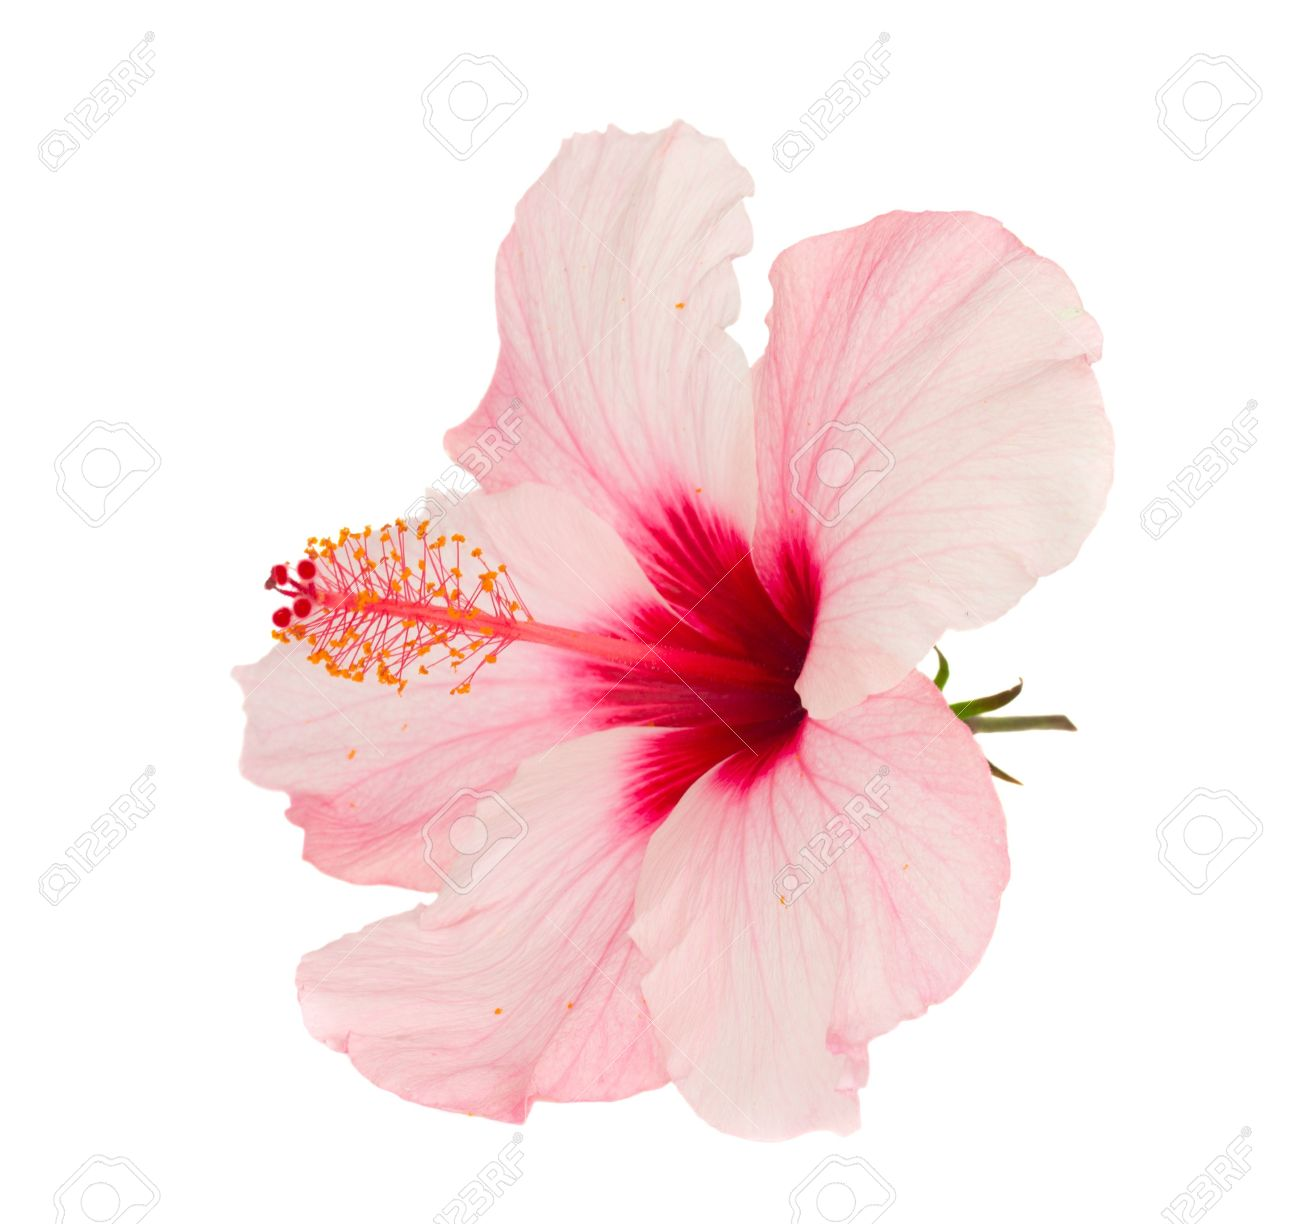 Pink hibiscus flower isolated on white background stock photo pink hibiscus flower isolated on white background stock photo 14460539 izmirmasajfo